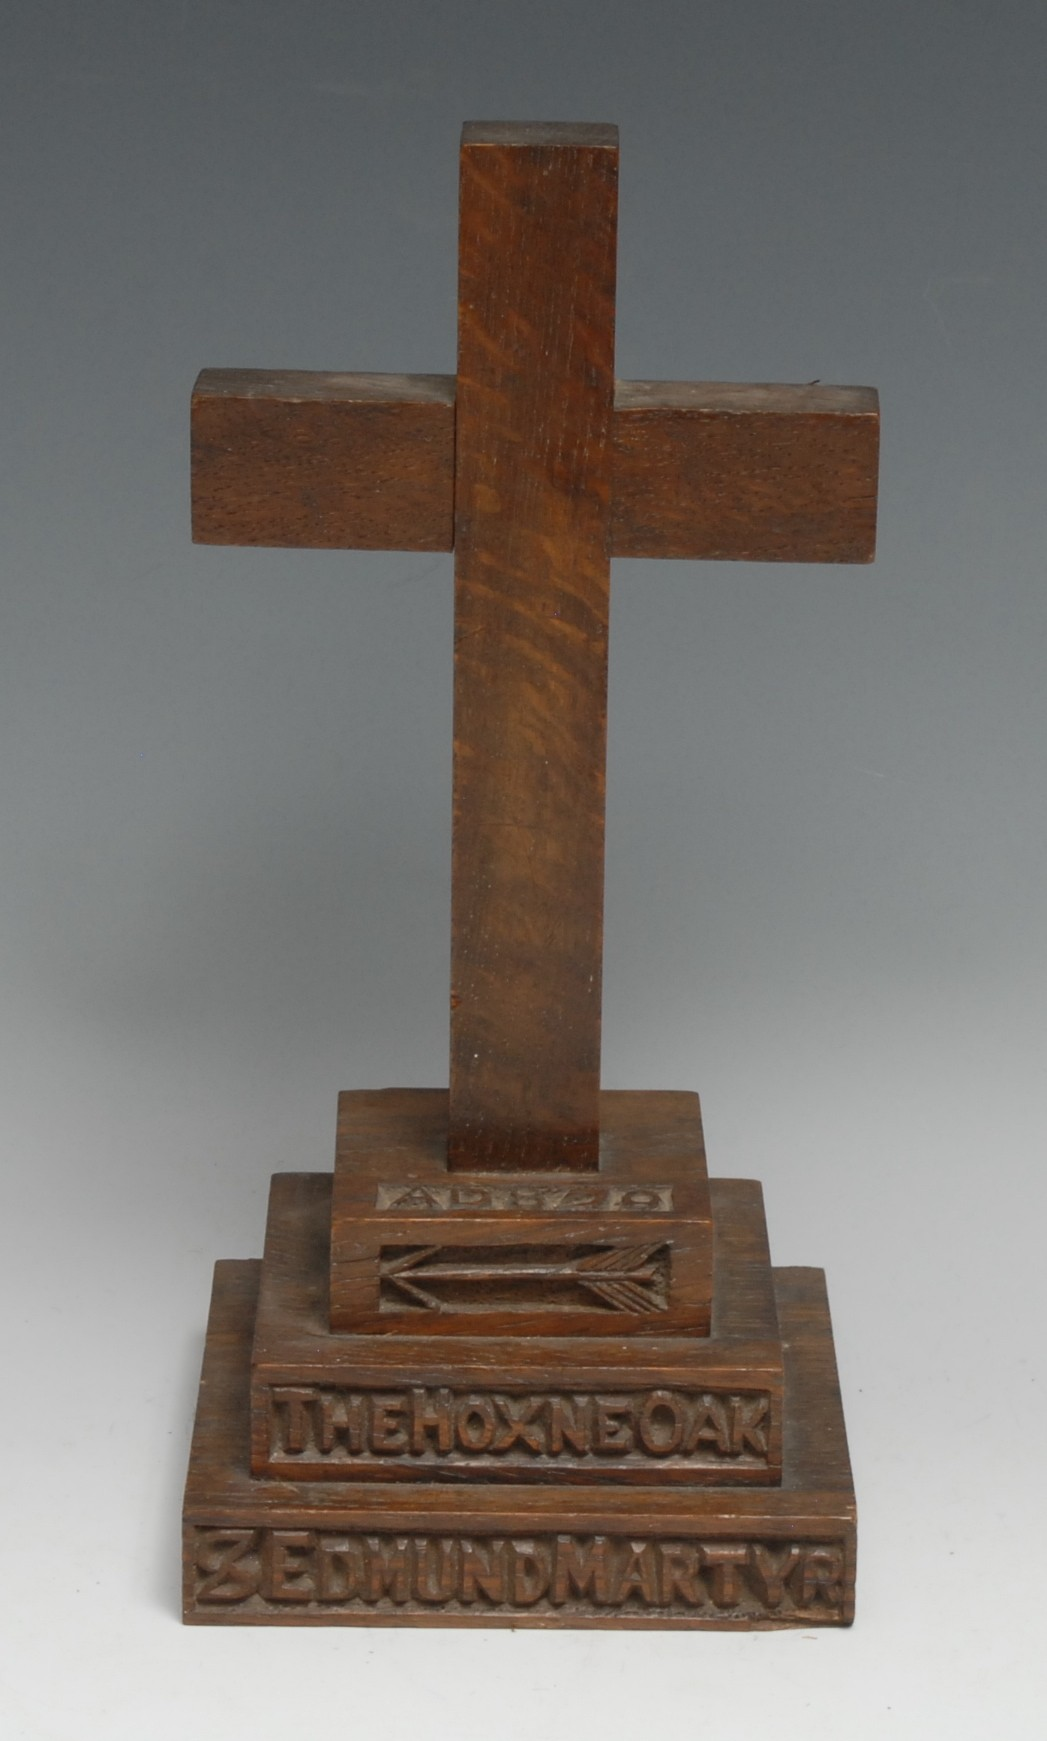 The Cult of King Edmund - a Victorian salvaged oak relic cross, the stepped base carved with an